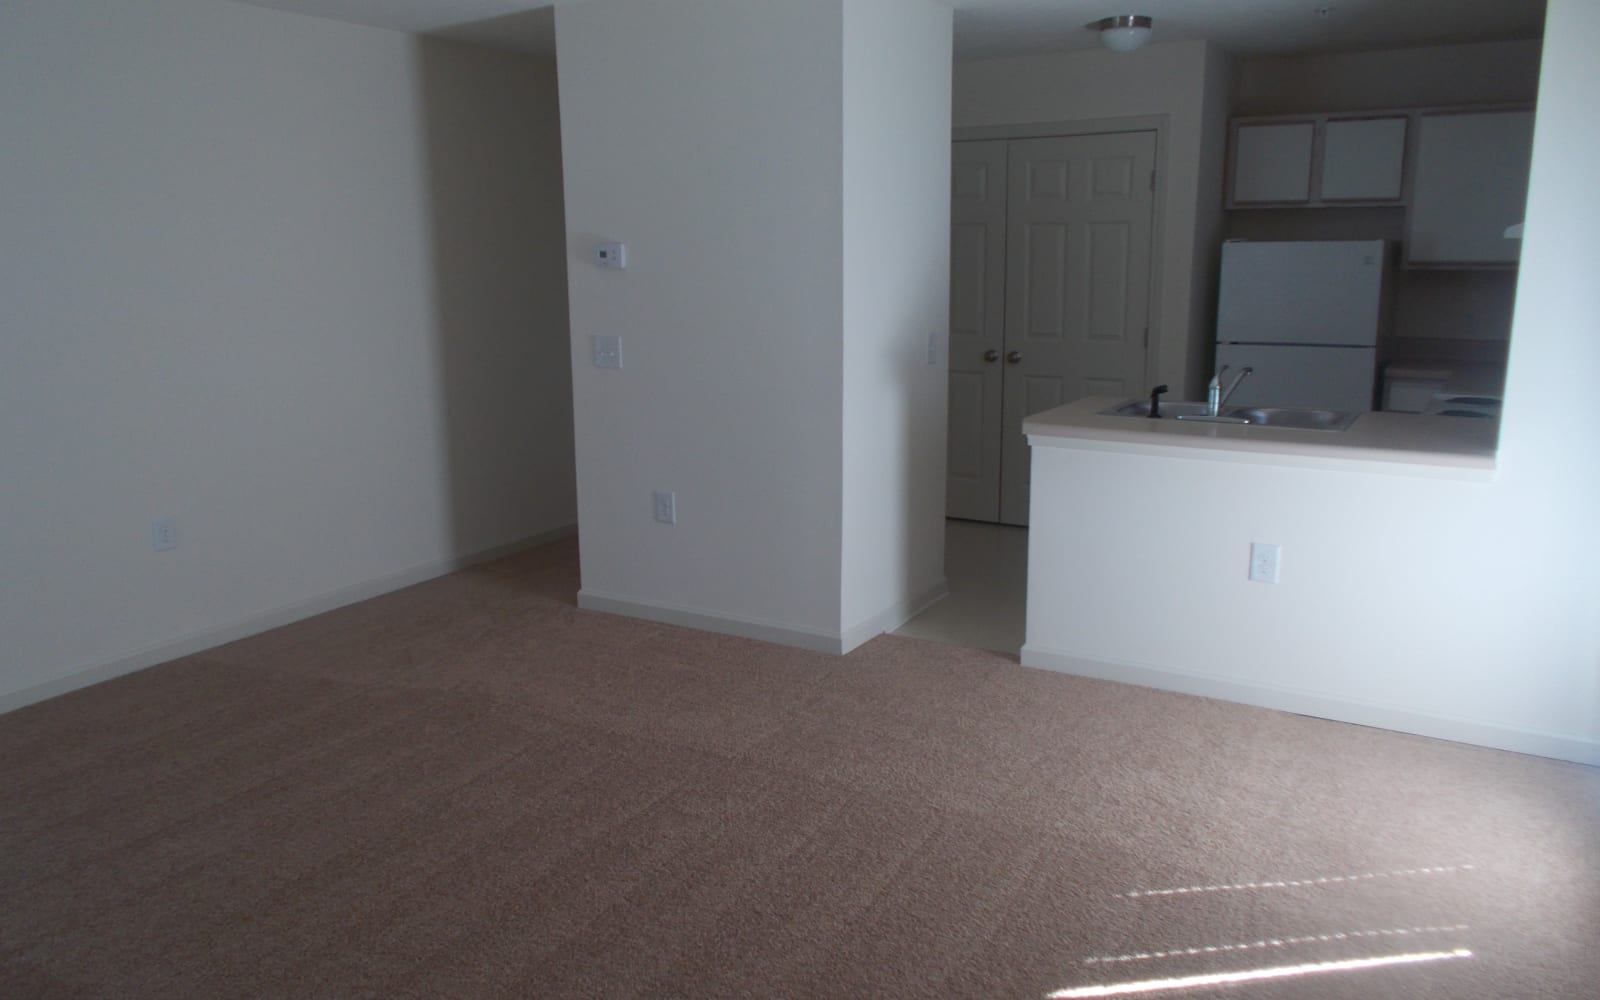 Living room and view of kitchen at Wedgefield Apartments in Raeford, North Carolina